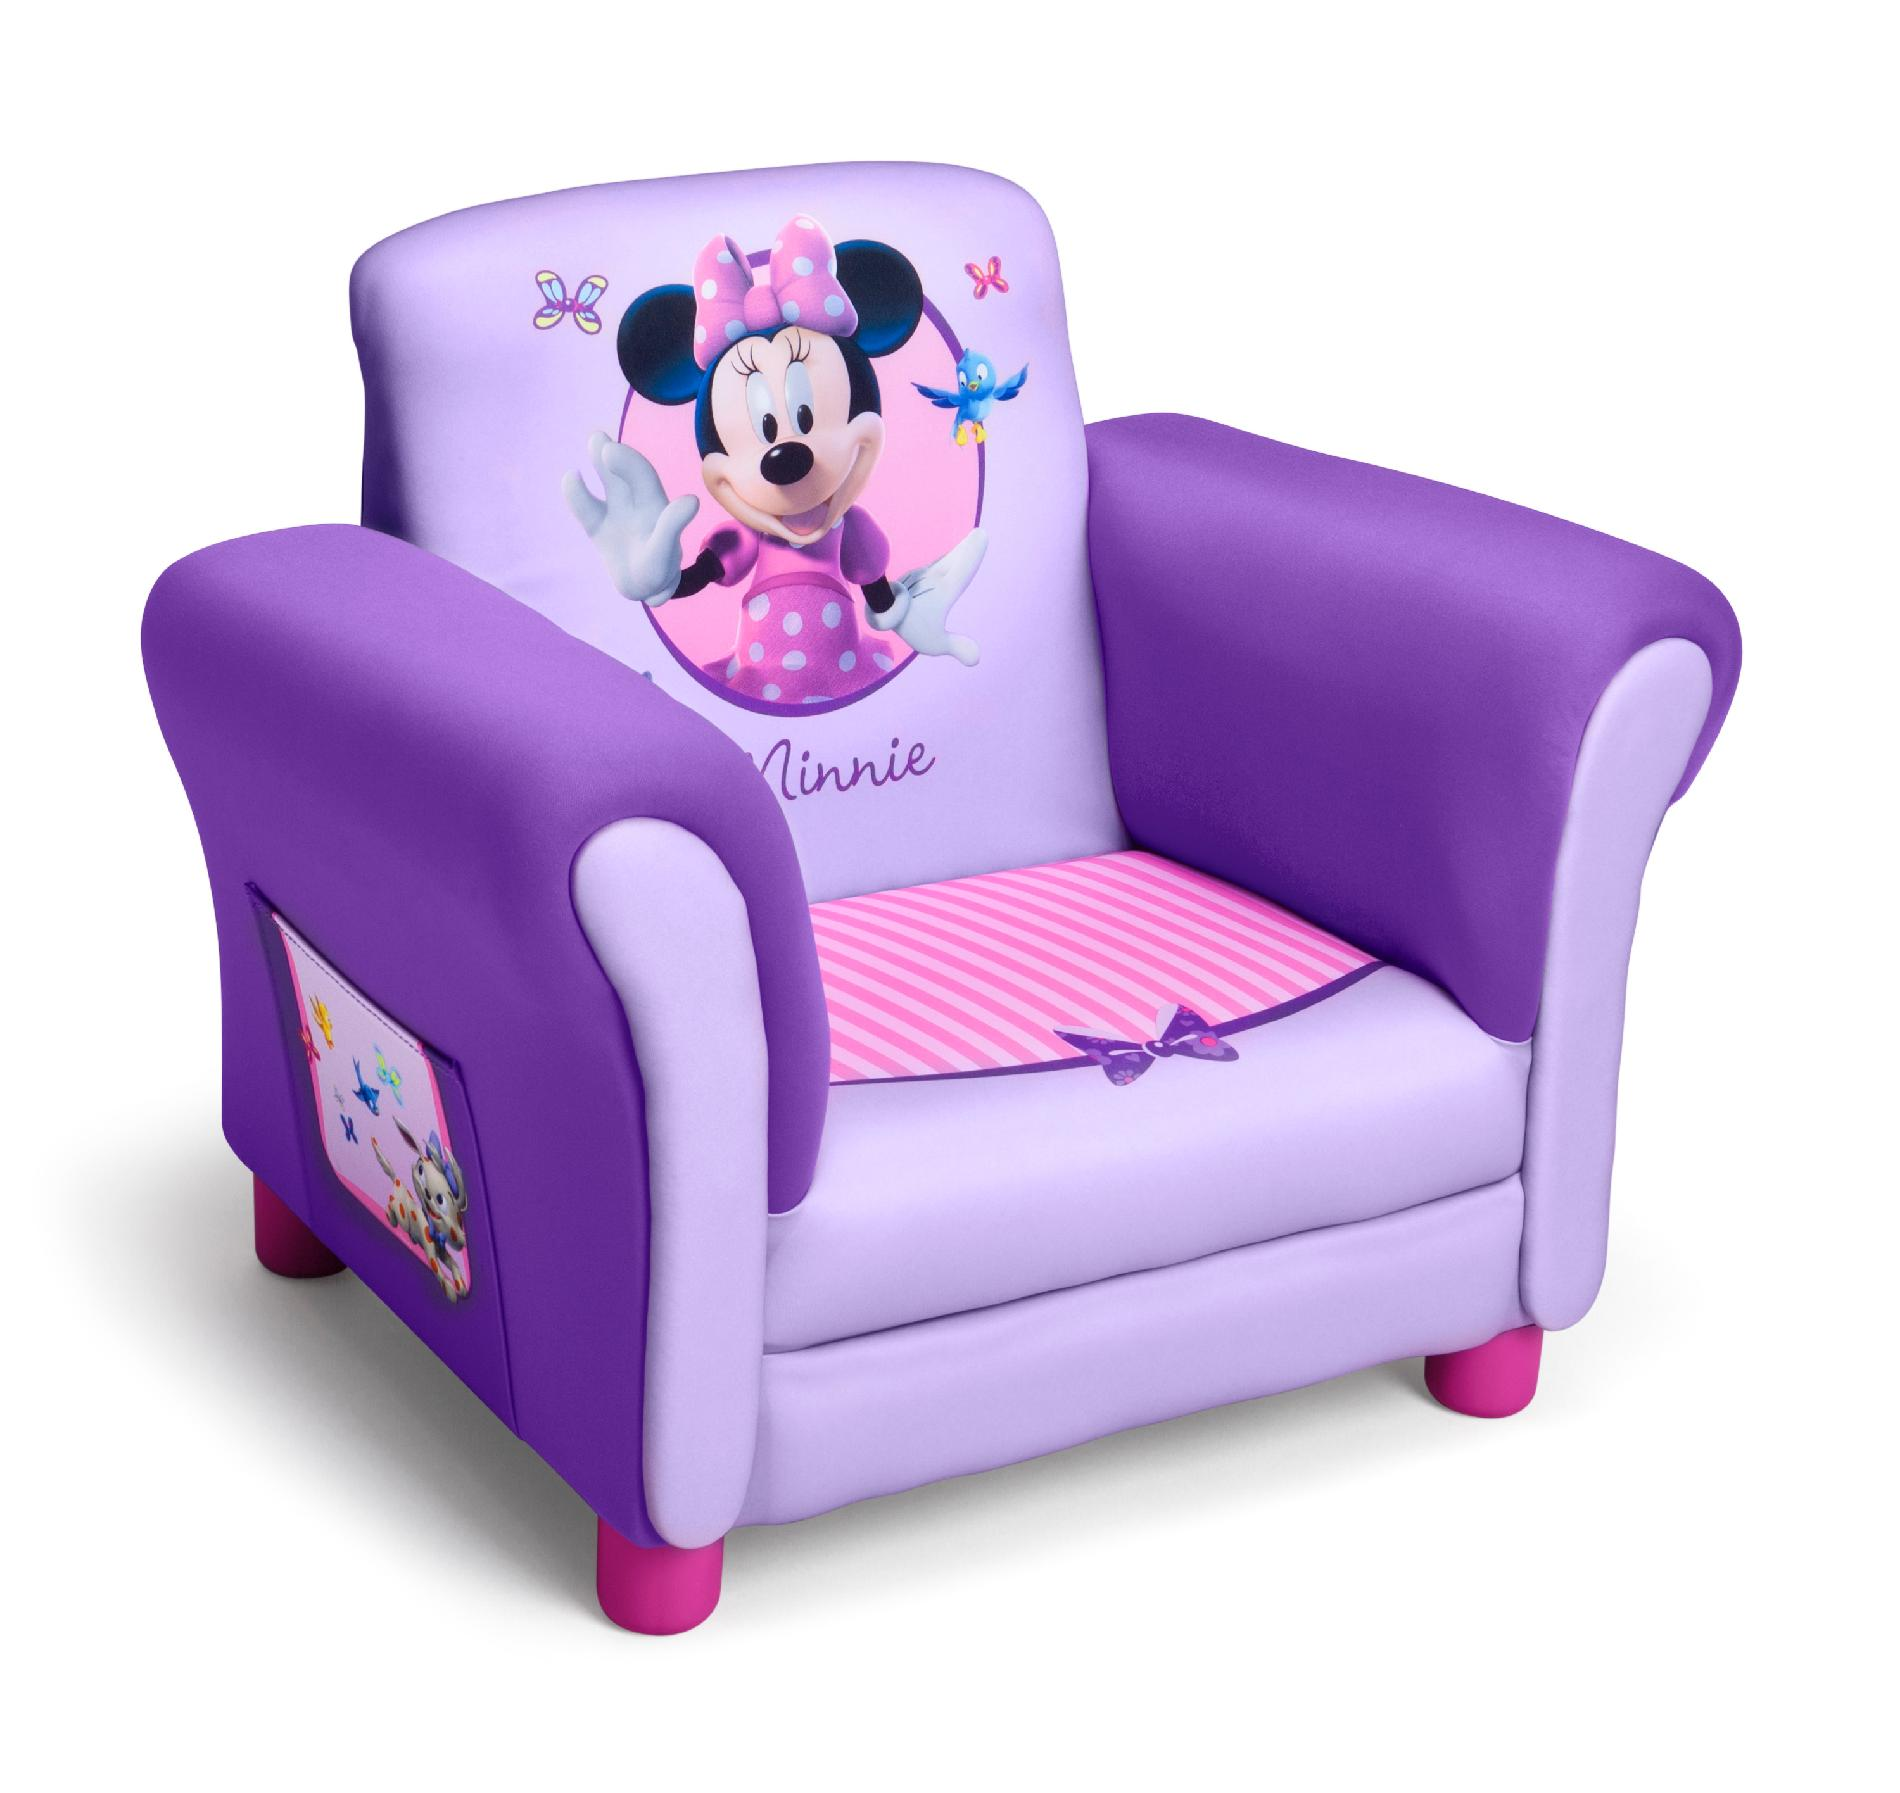 Upholstered Children's Chairs Upc 080213027476 Delta Minnie Mouse Purple Upholstered